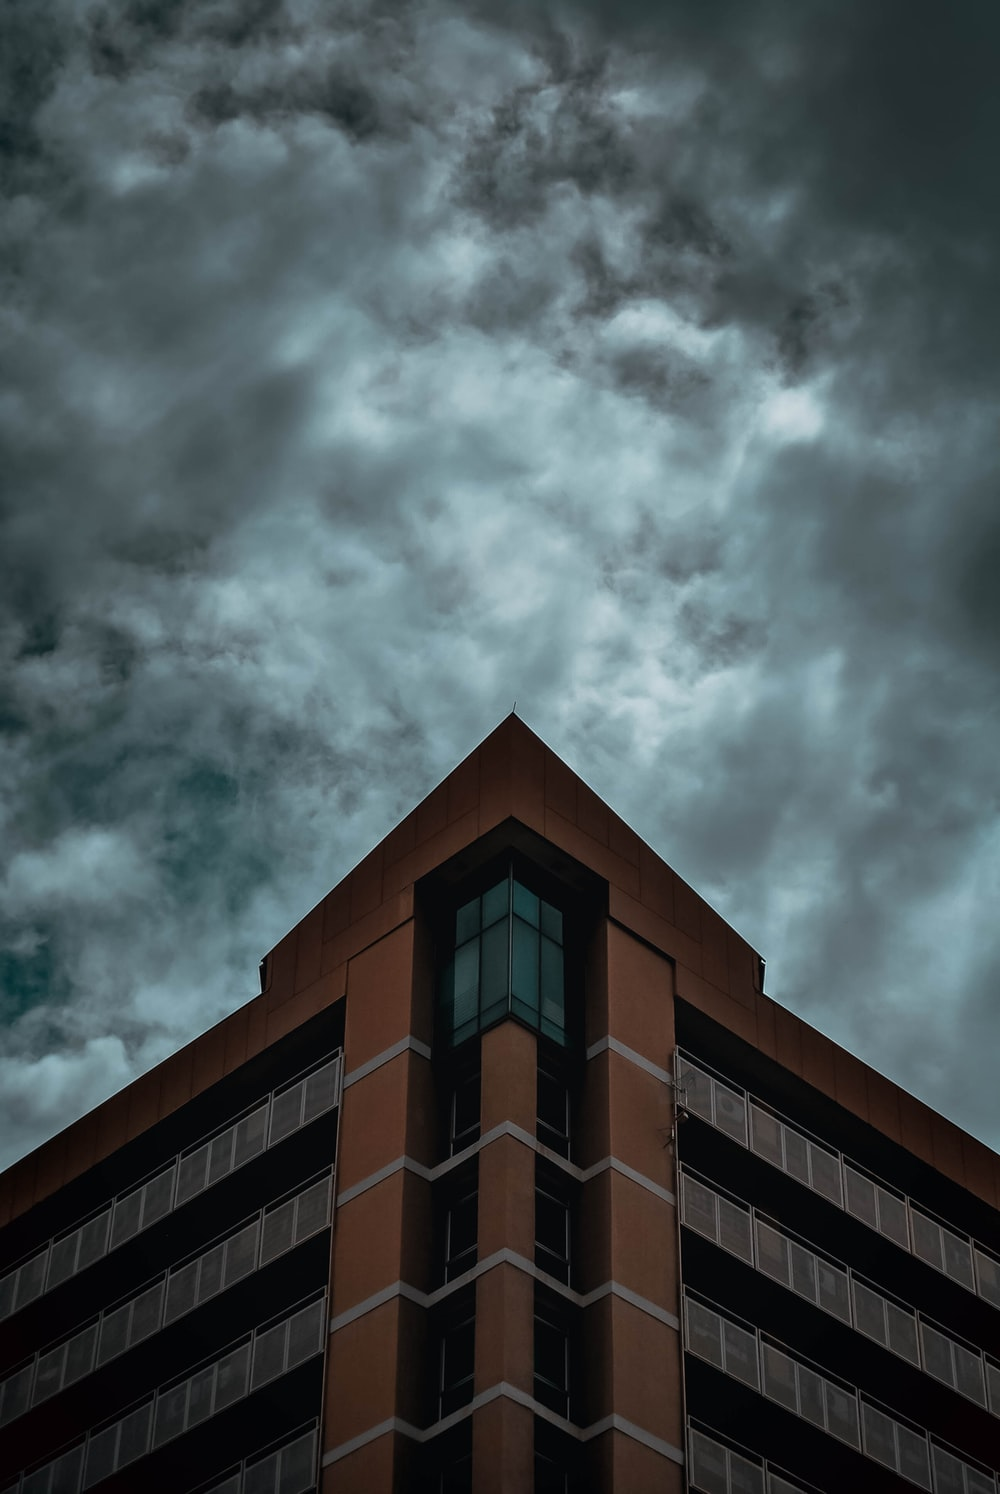 brown and black concrete building under gray clouds